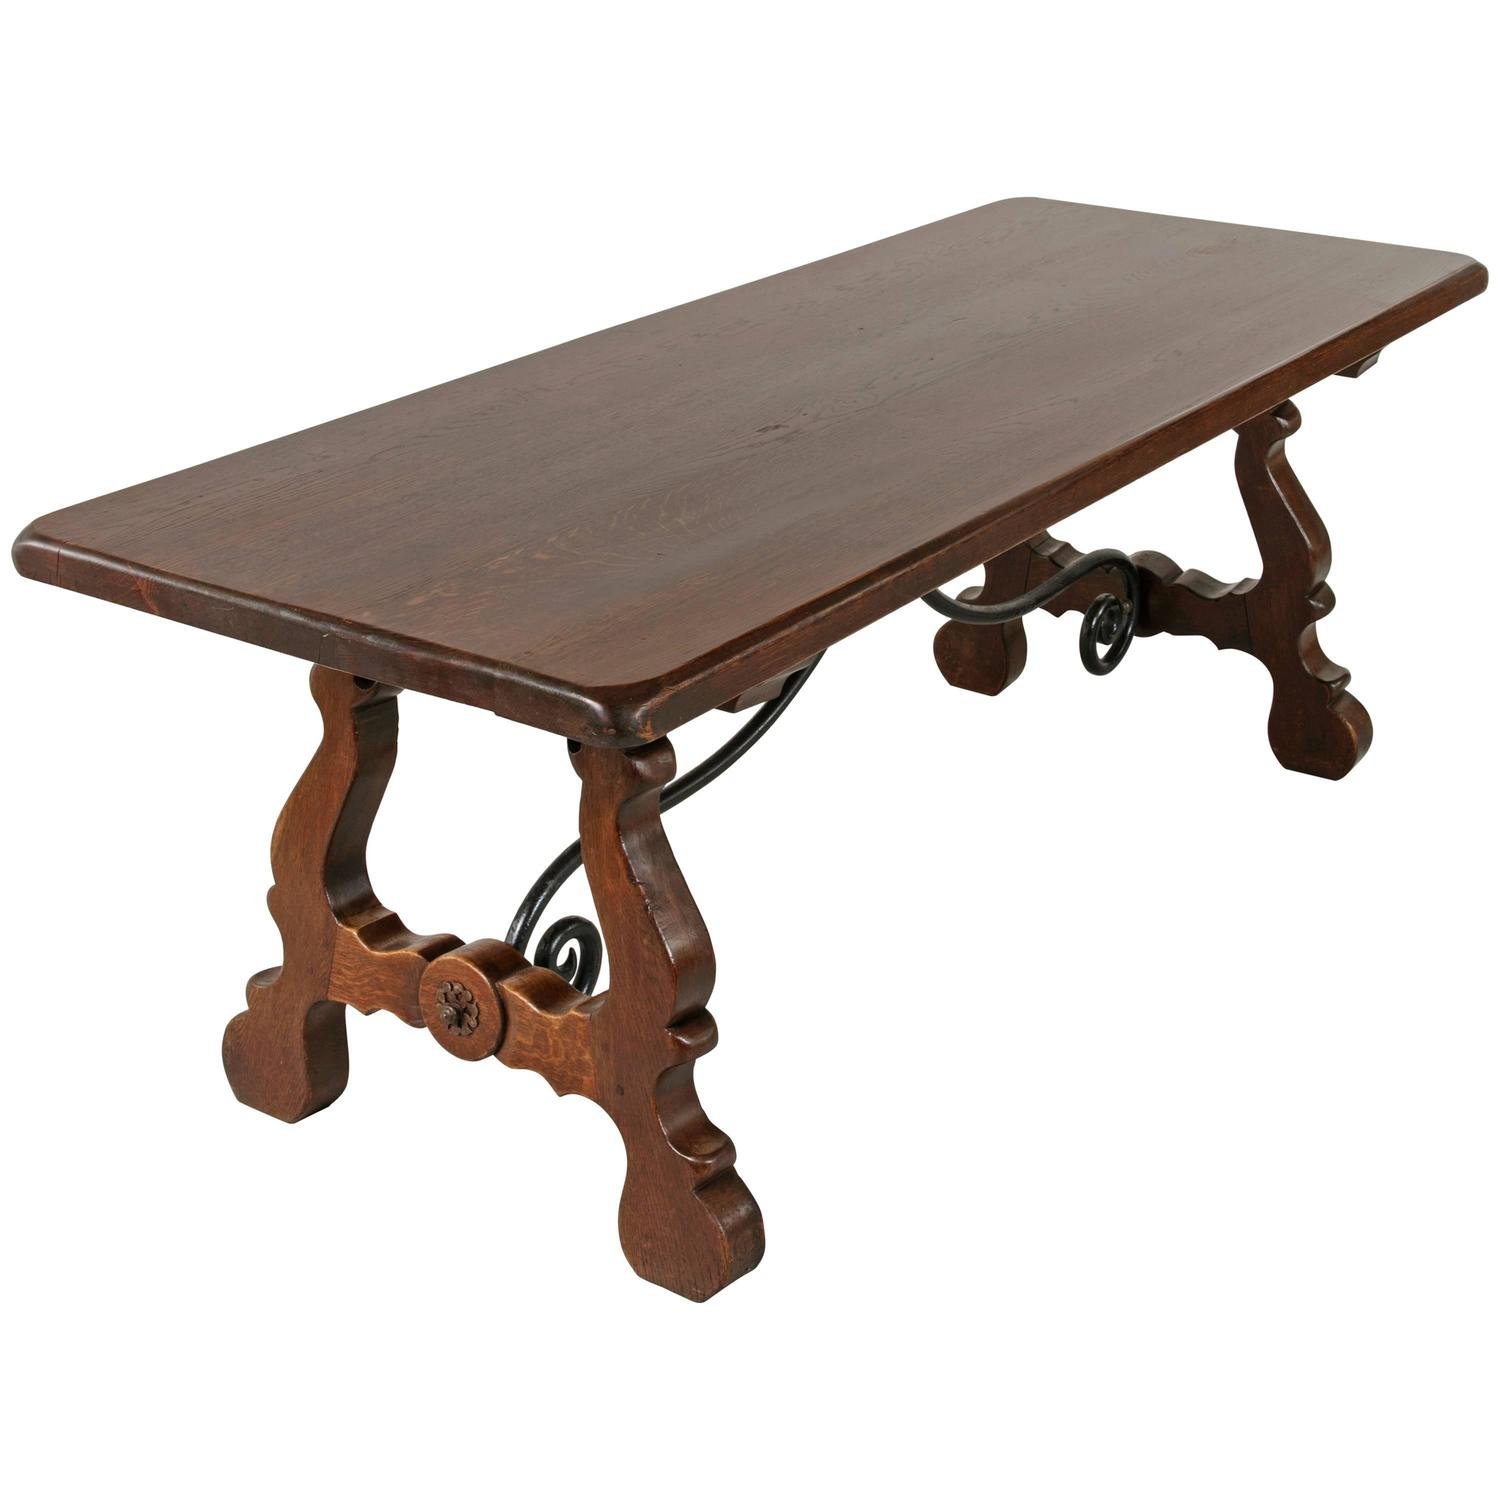 Spanish Renaissance Style Dining Table, Sofa Table, Console Table, Oak And  Iron